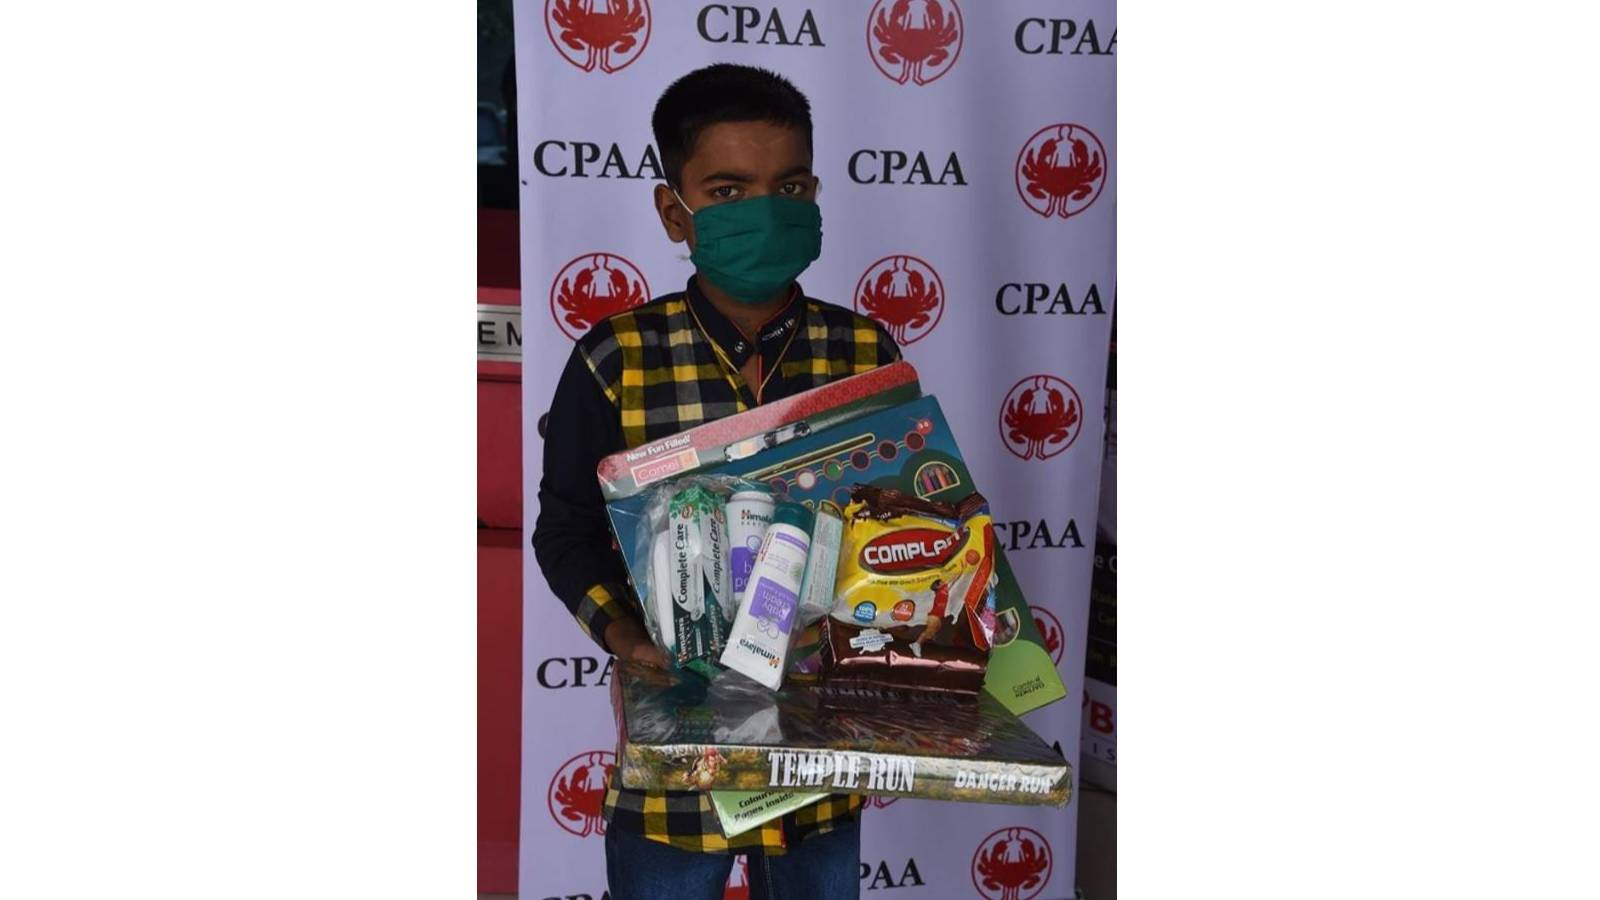 Goody Bag with nutrients for children batting cancer